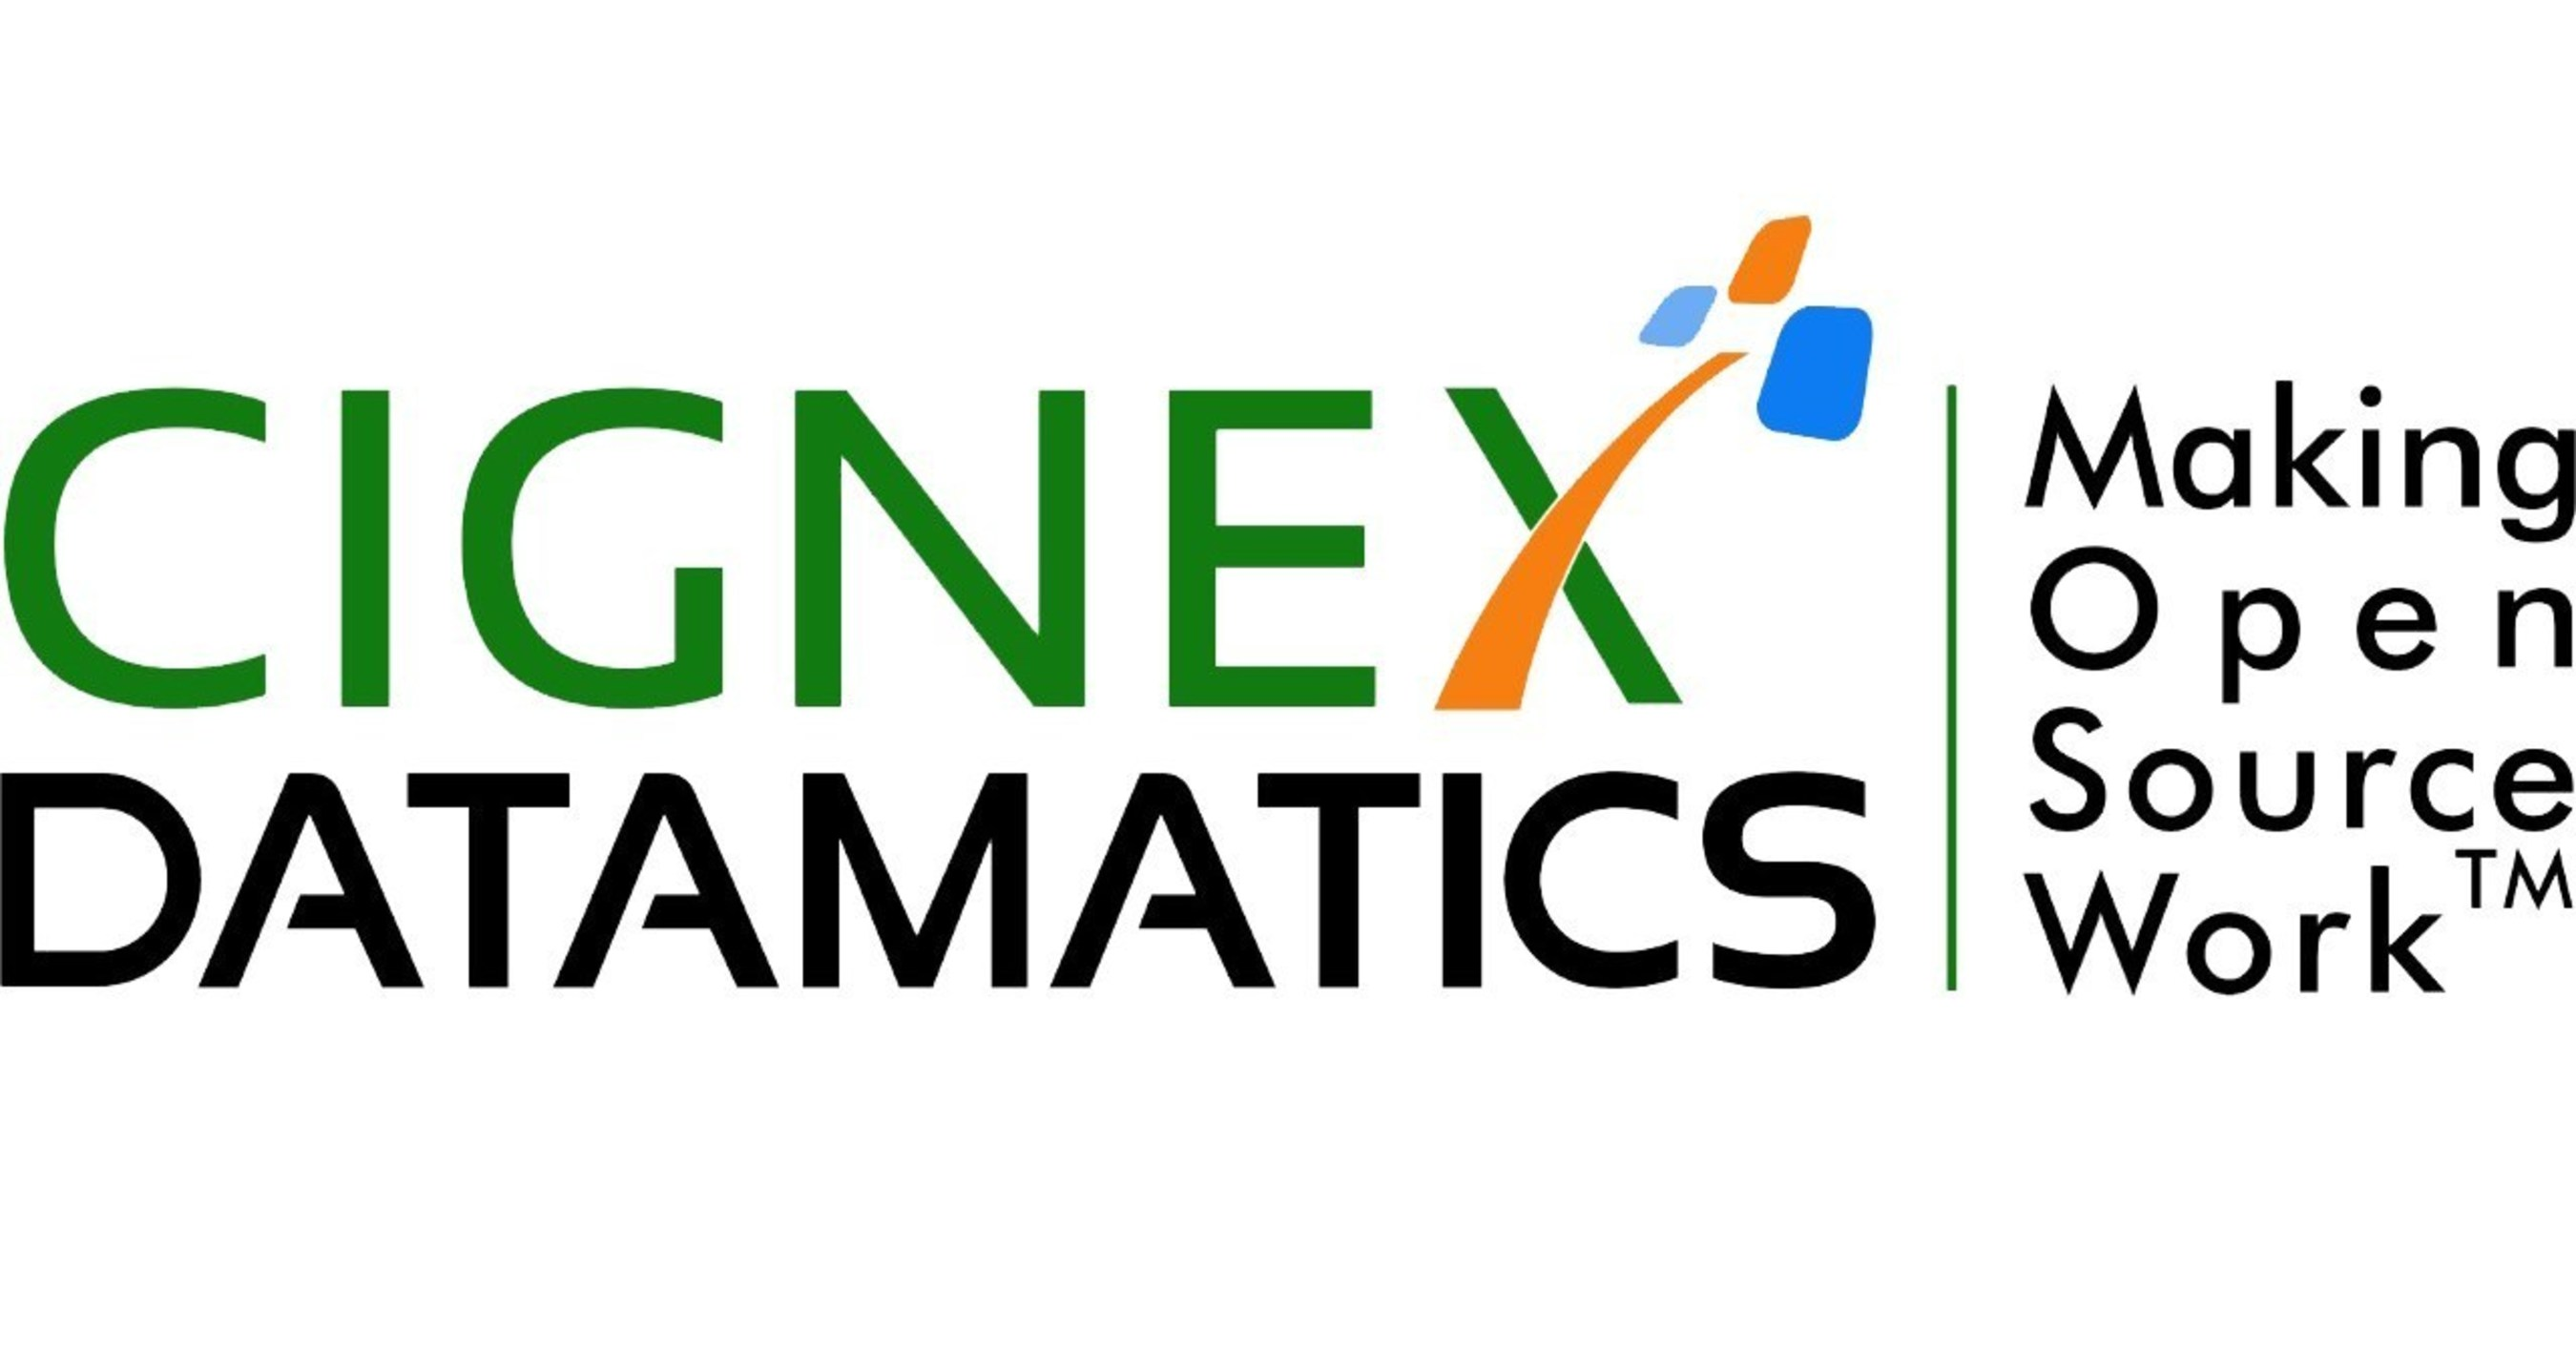 CIGNEX Datamatics to Host Live Webinar on Portal User Engagement with Liferay's Audience Targeting App